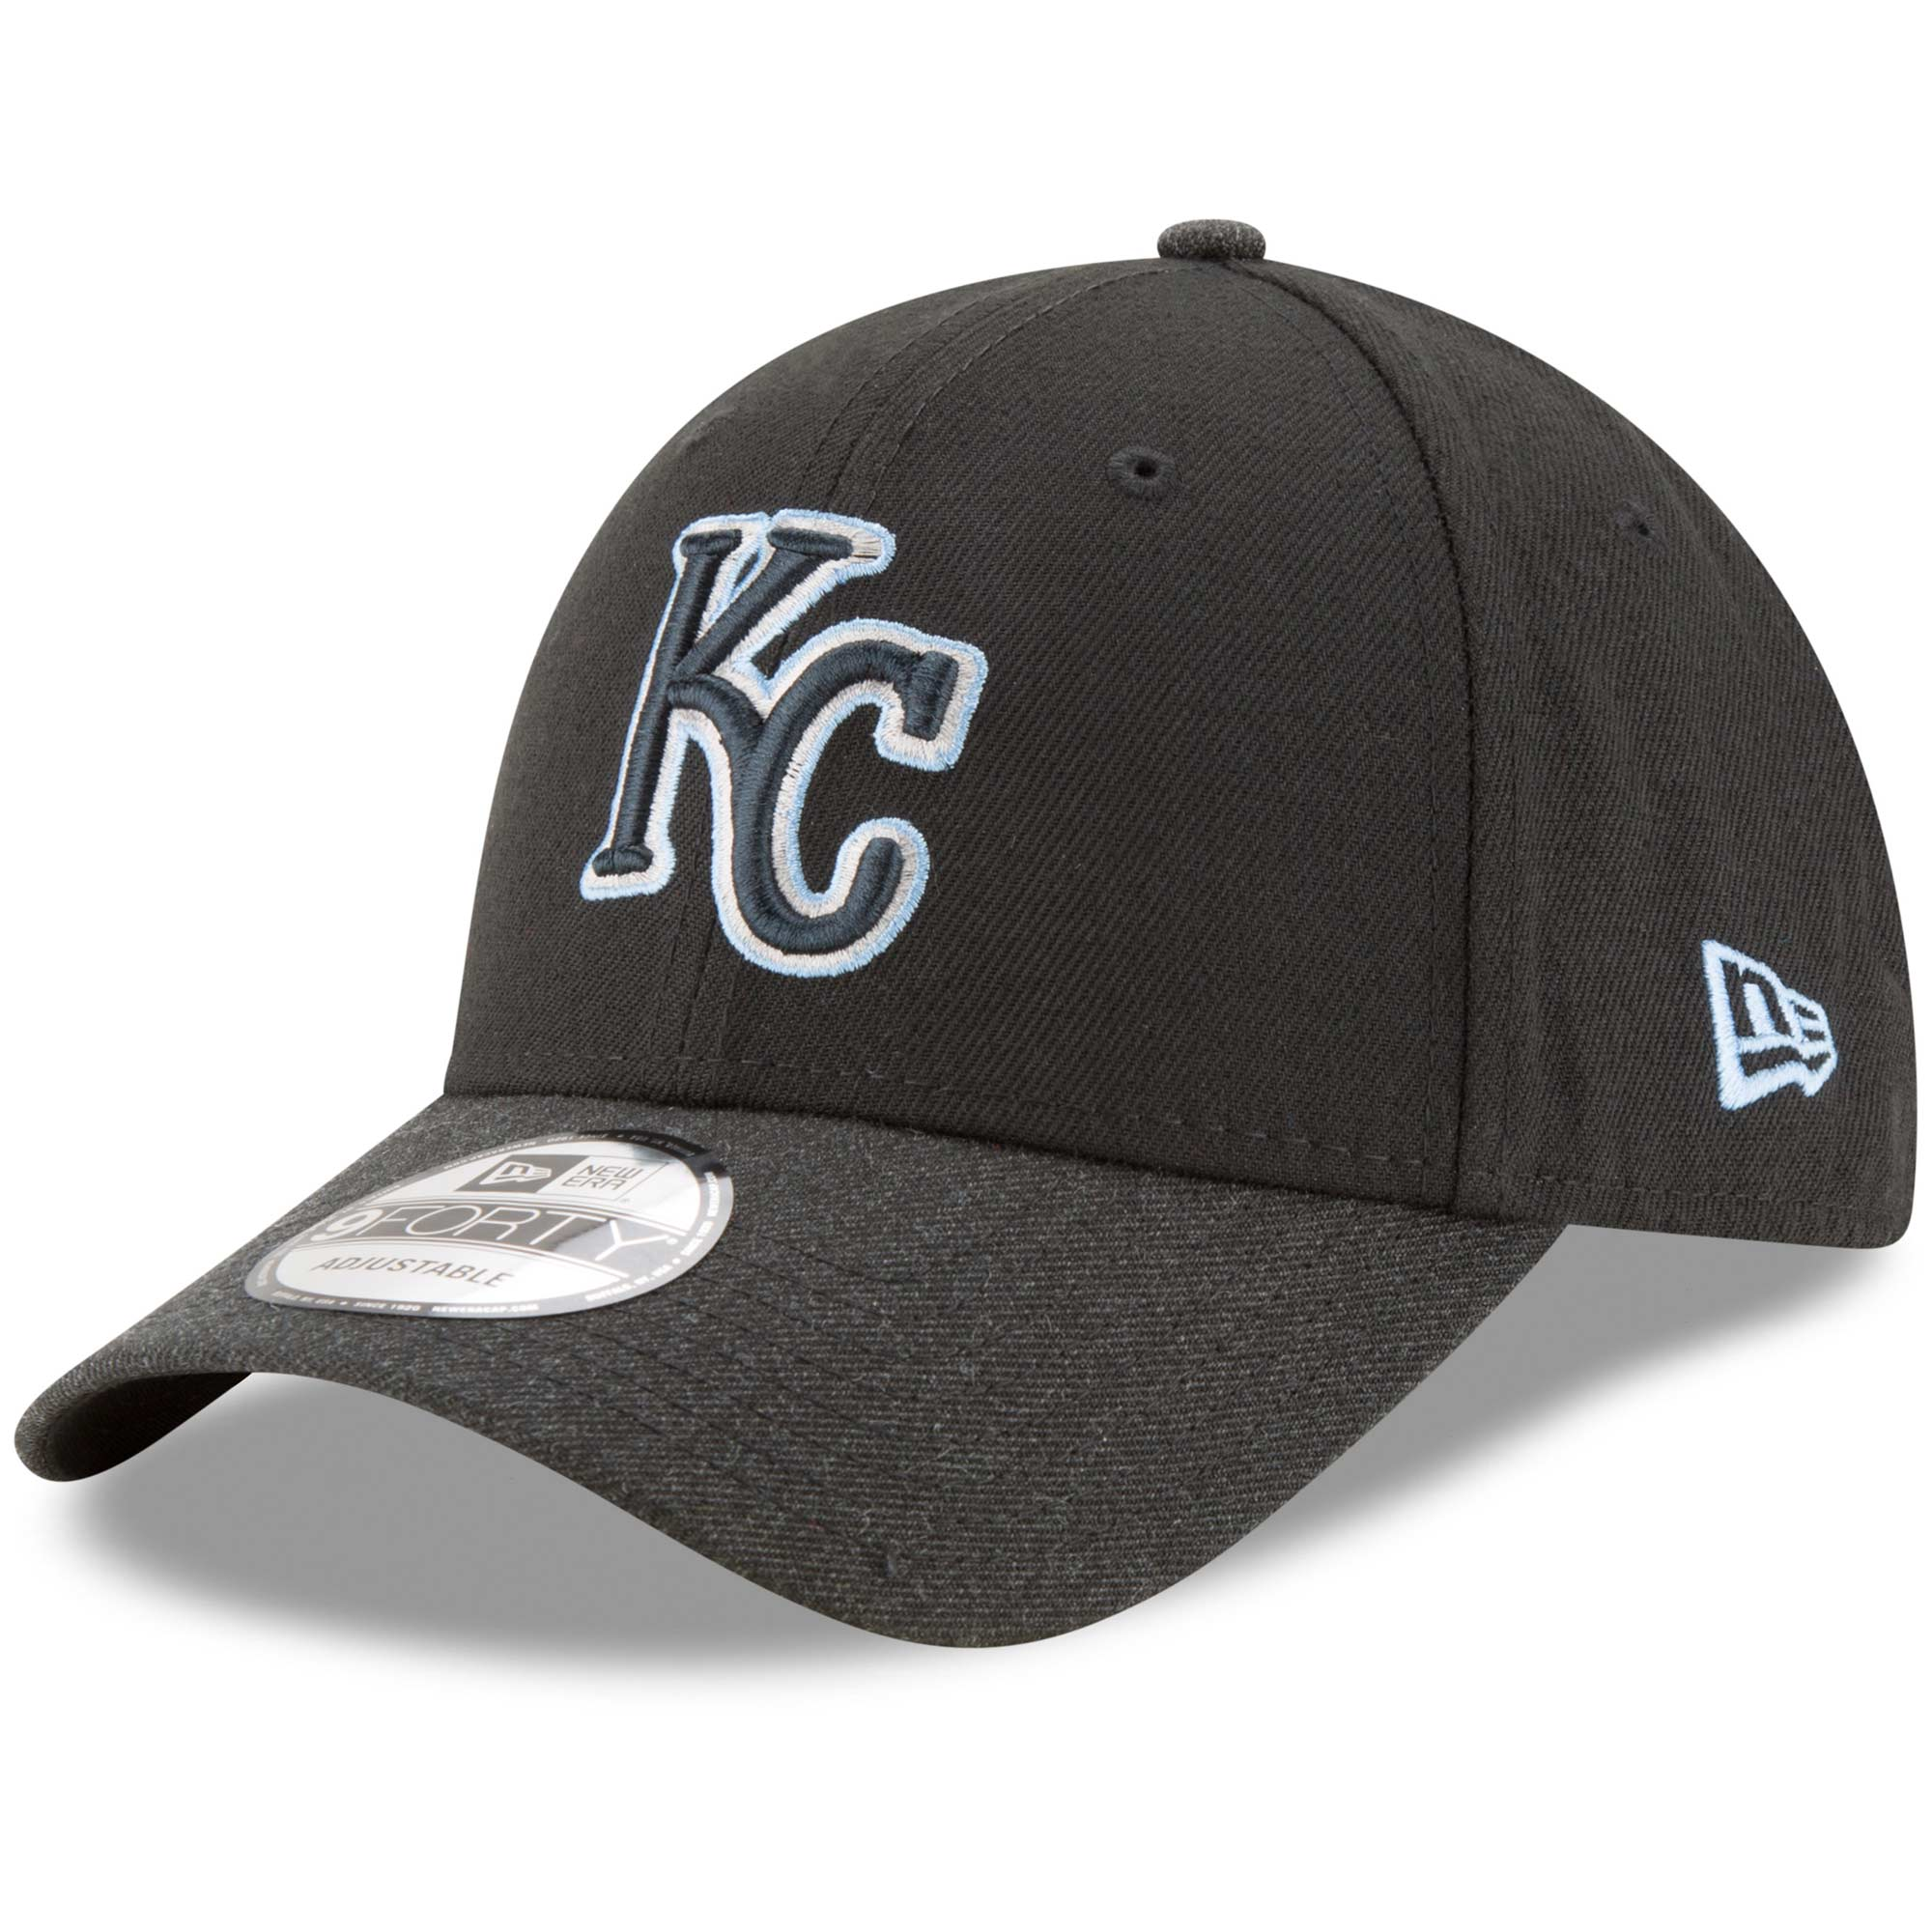 Kansas City Royals New Era The League 2 9FORTY Adjustable Hat - Black/Heathered Black - OSFA